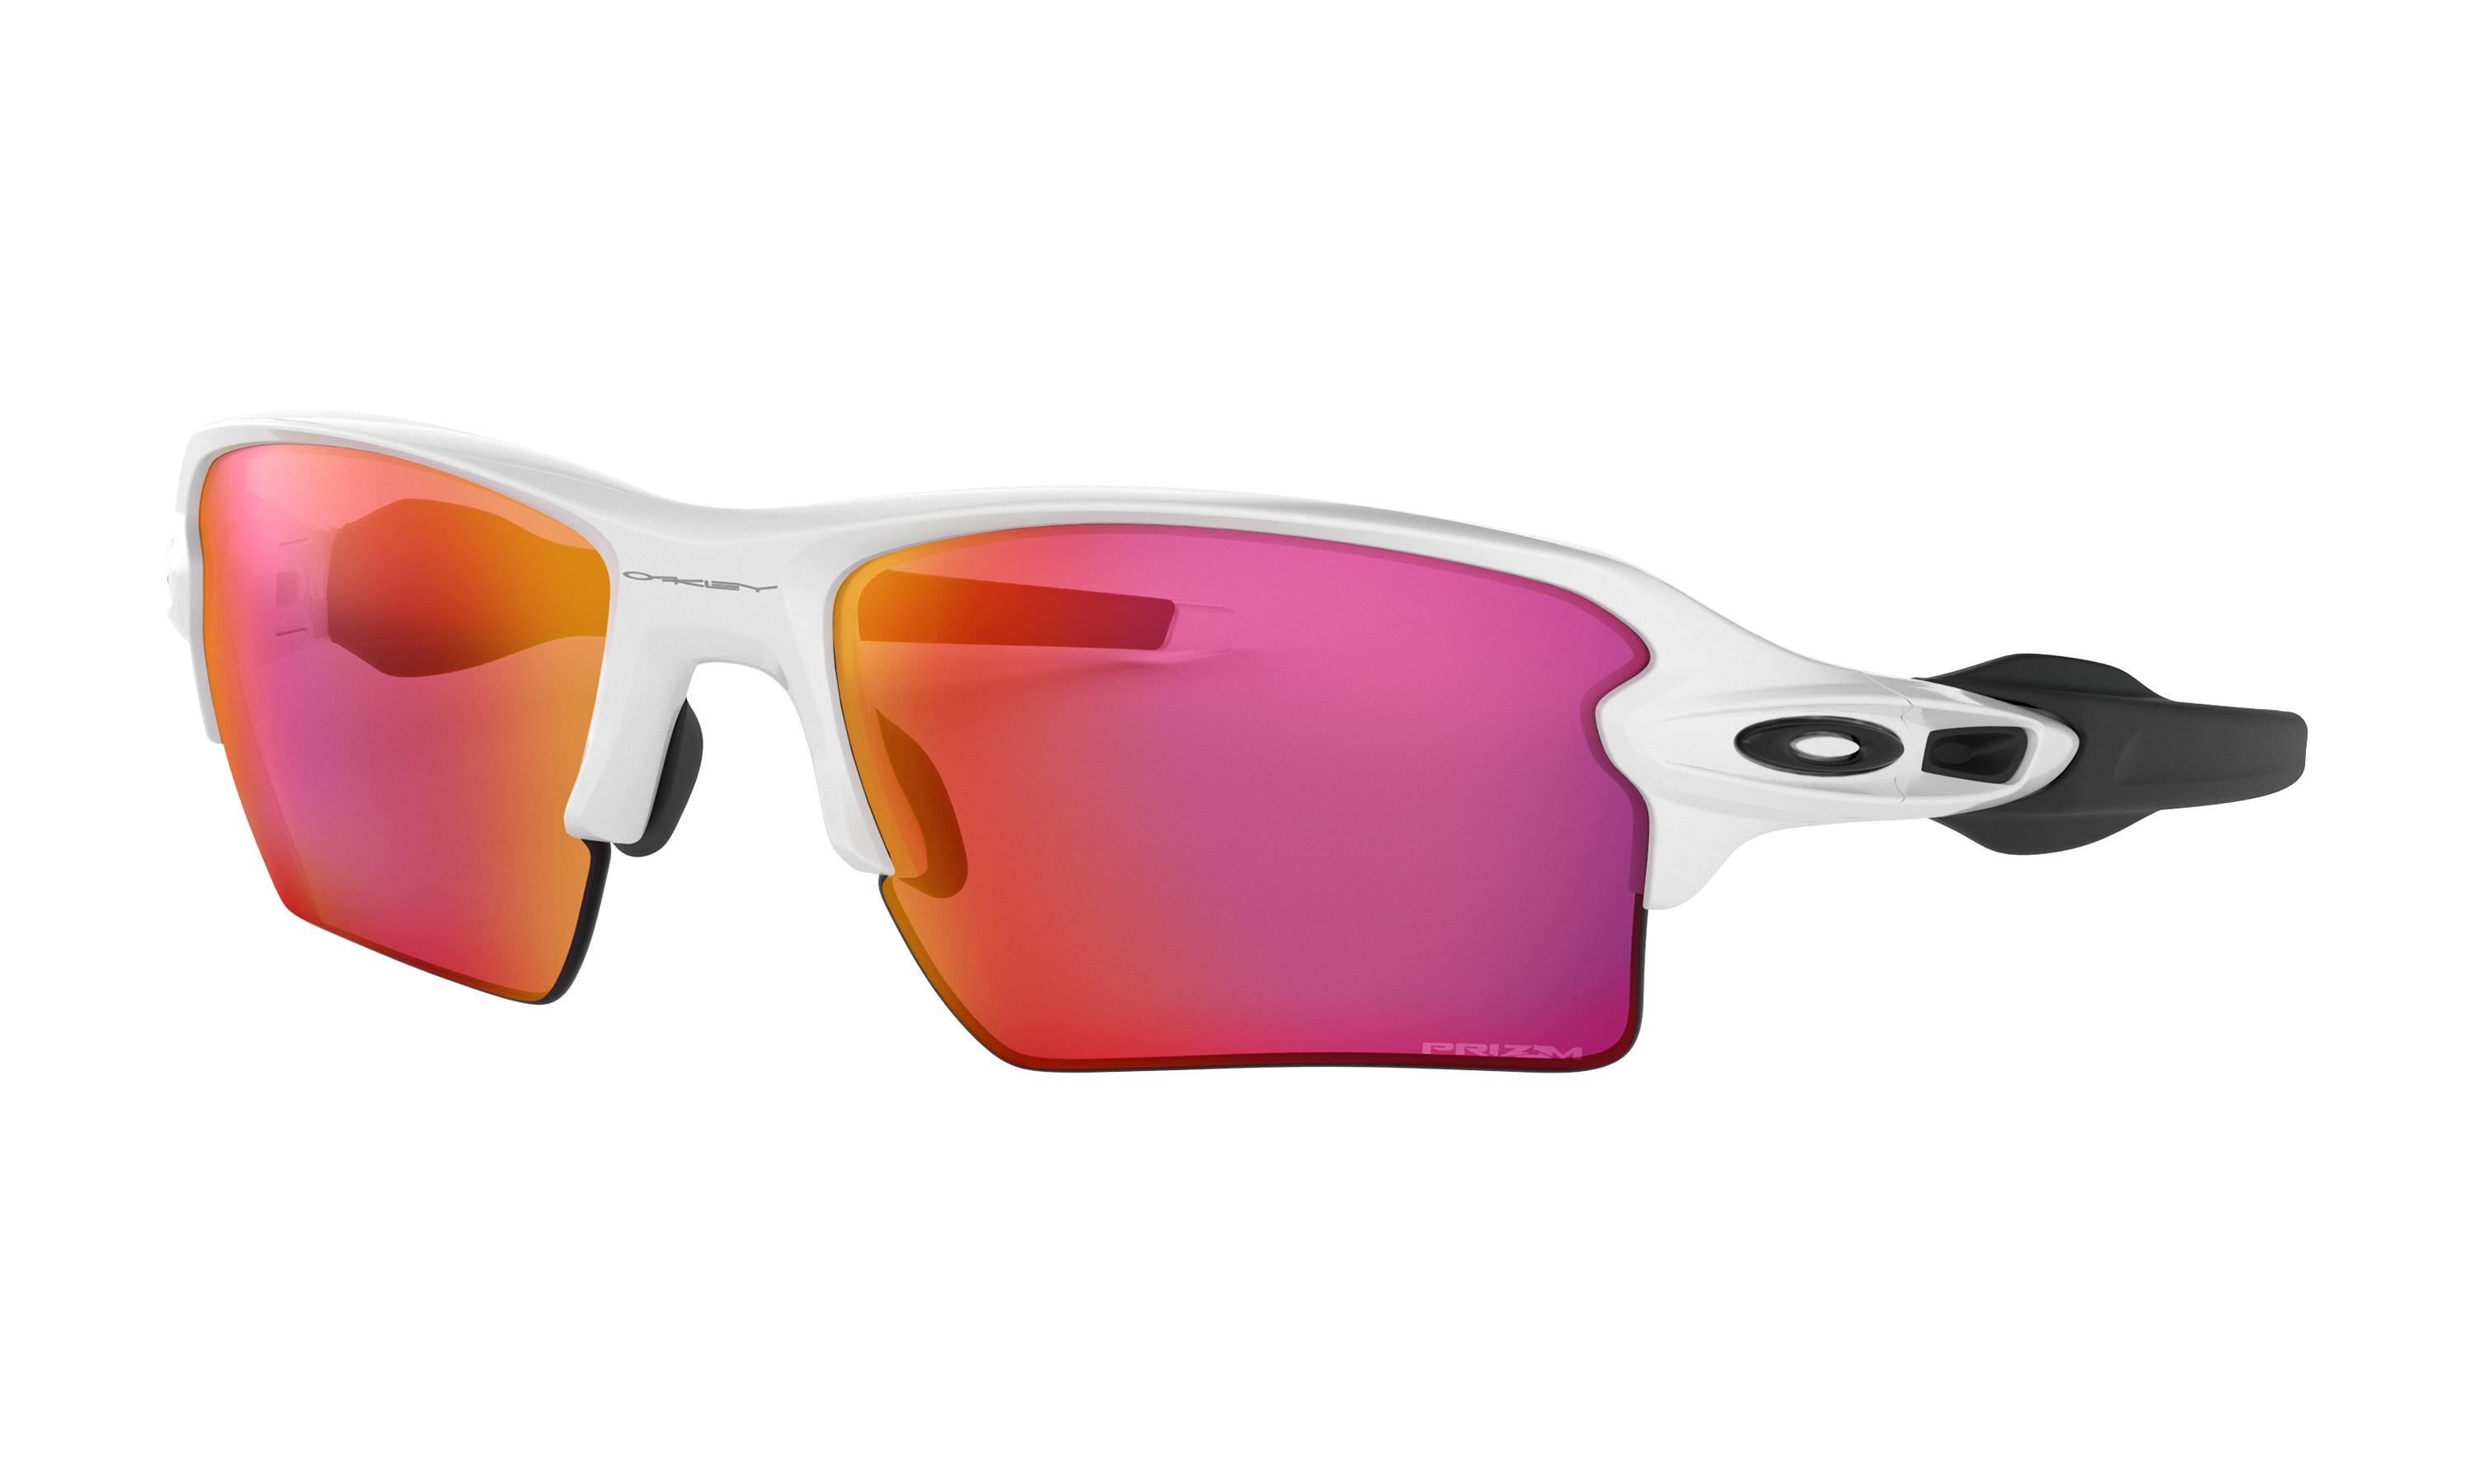 bfc16923c6be4 Oakley® Flak 2.0 XL - PRIZM Prescription Available